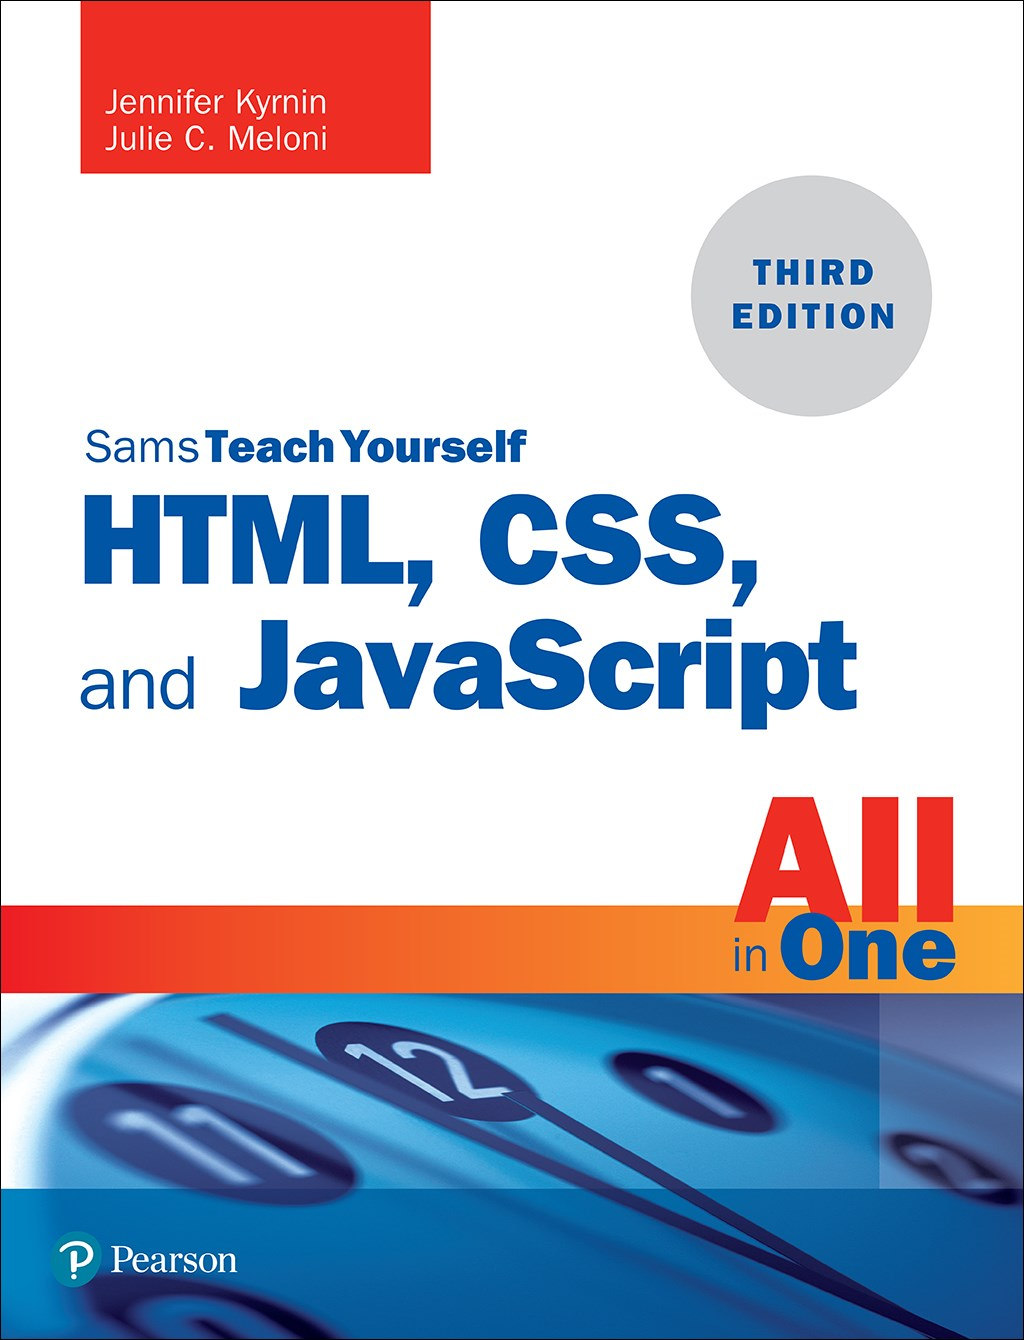 HTML, CSS, and JavaScript All in One: Covering HTML5, CSS3, and ES6, Sams Teach Yourself, 3rd Edition